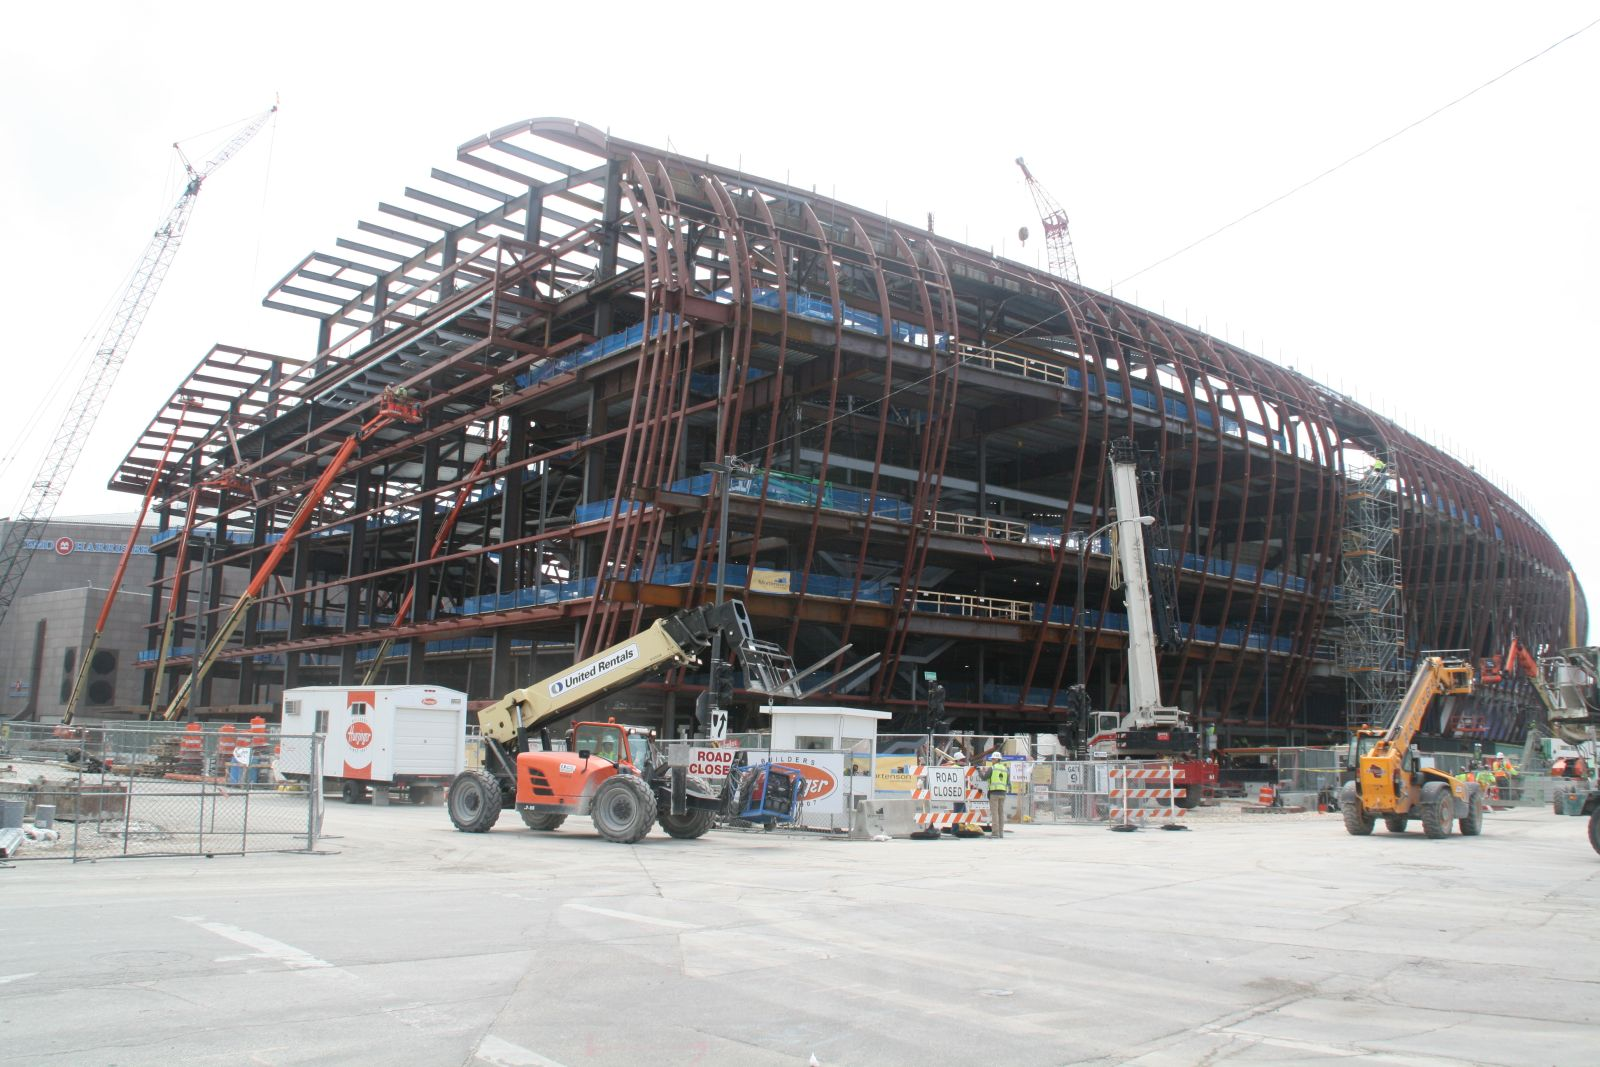 Wisconsin Entertainment & Sports Center Construction